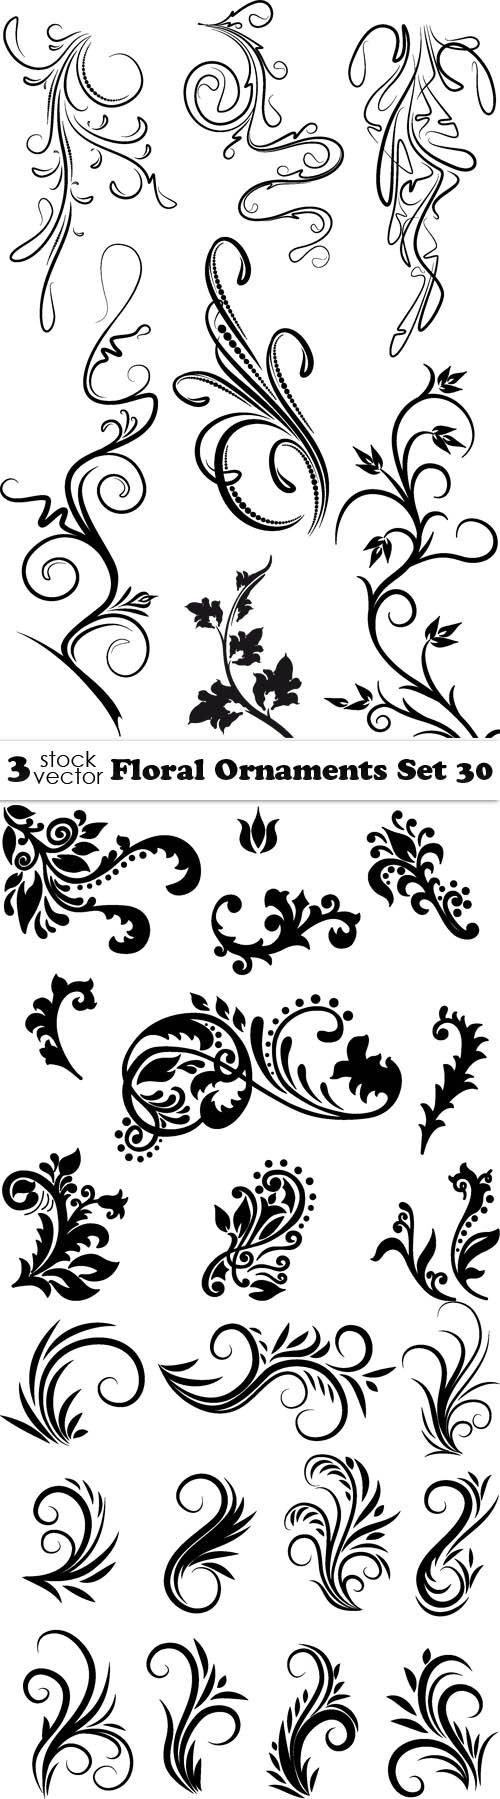 Vectors - Floral Ornaments Set 30